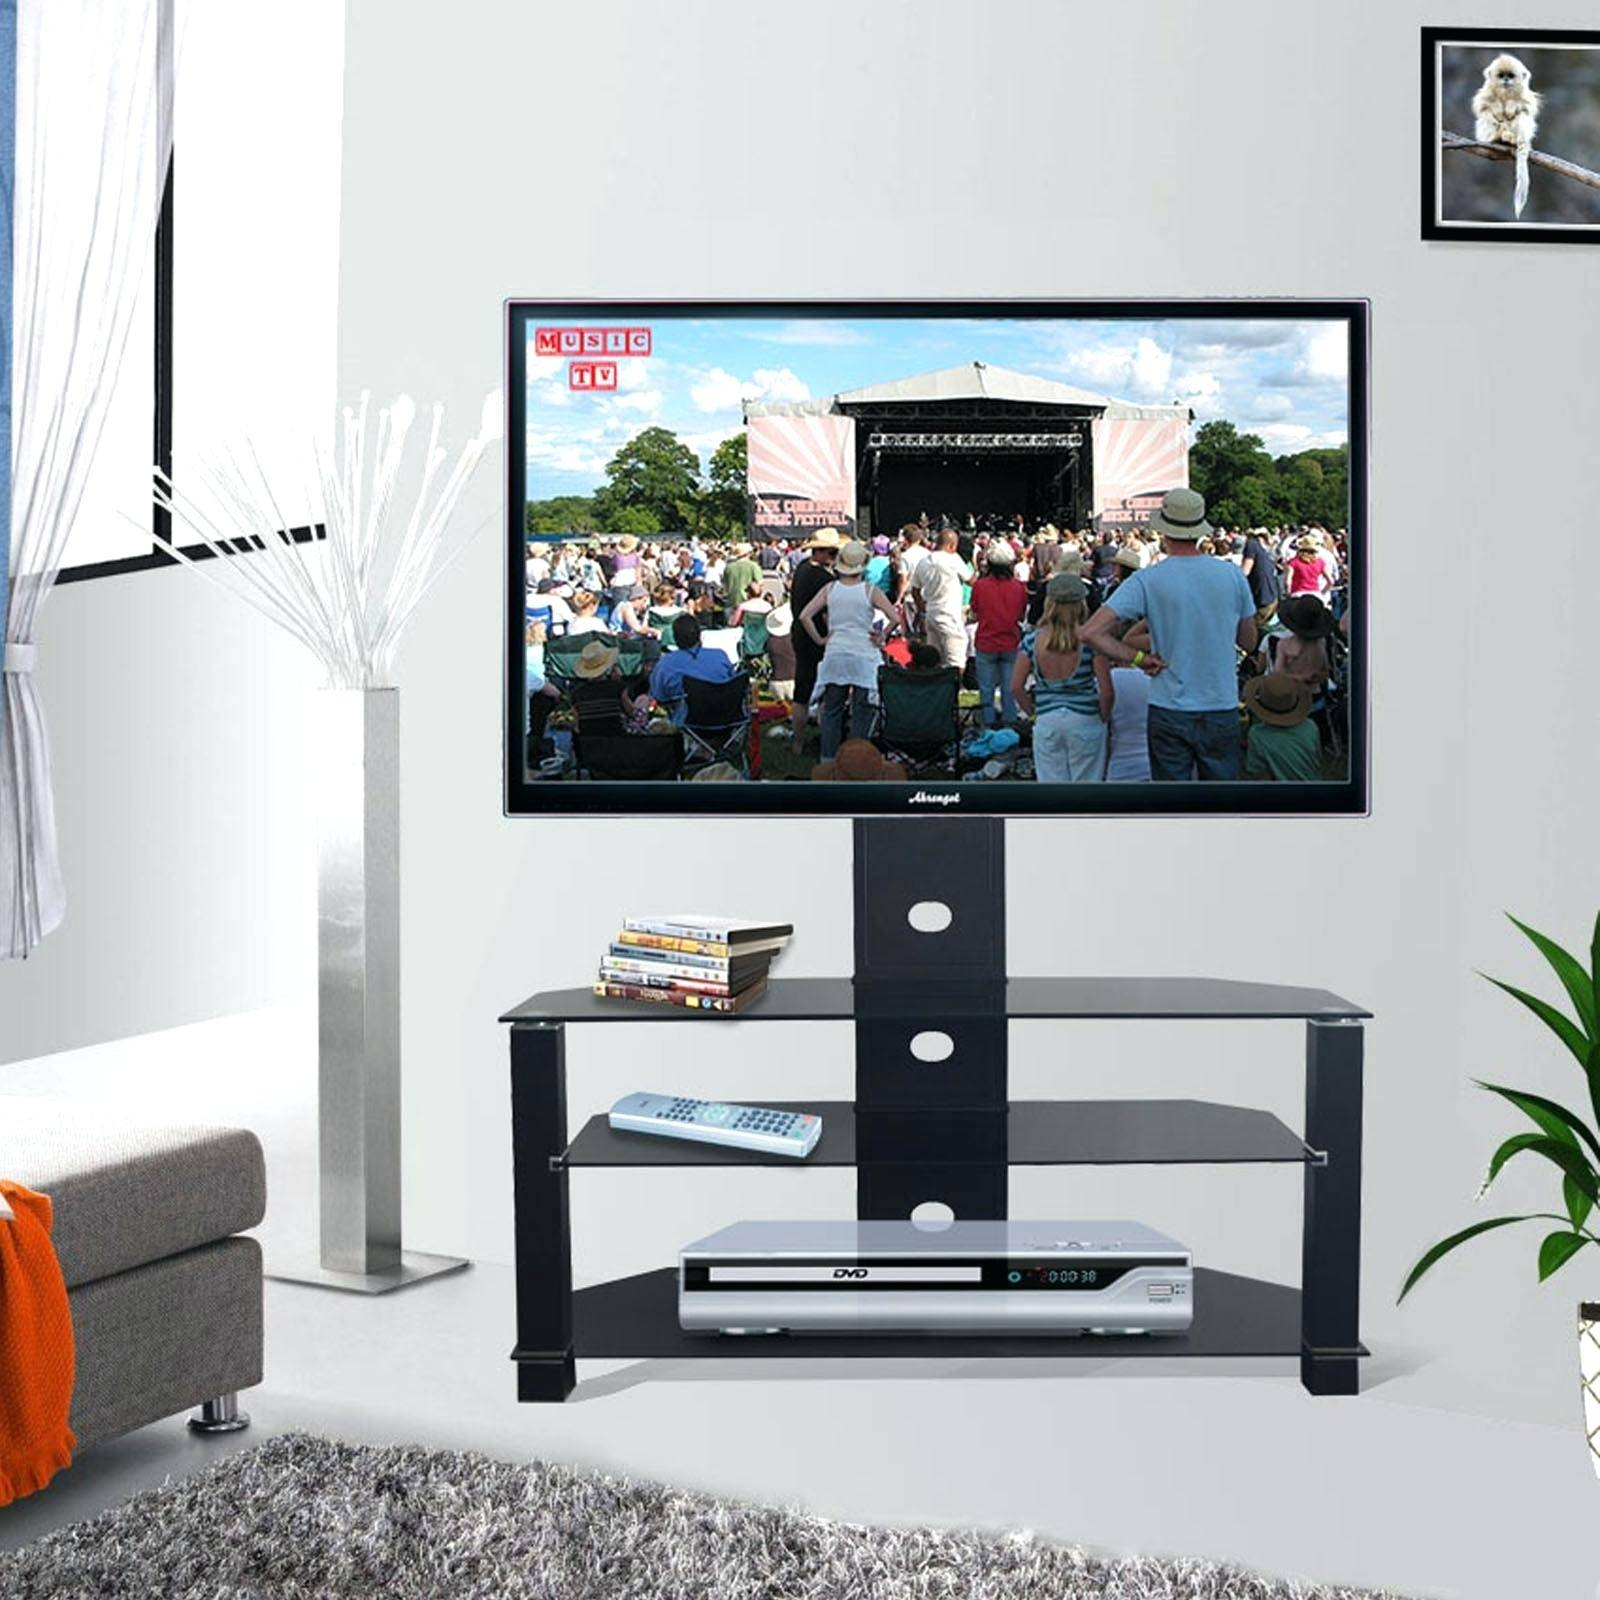 Tv Stand : Aliexpresscom Buy Black Articulating Adjustable Swivel Regarding Tv Stands Swivel Mount (View 12 of 15)